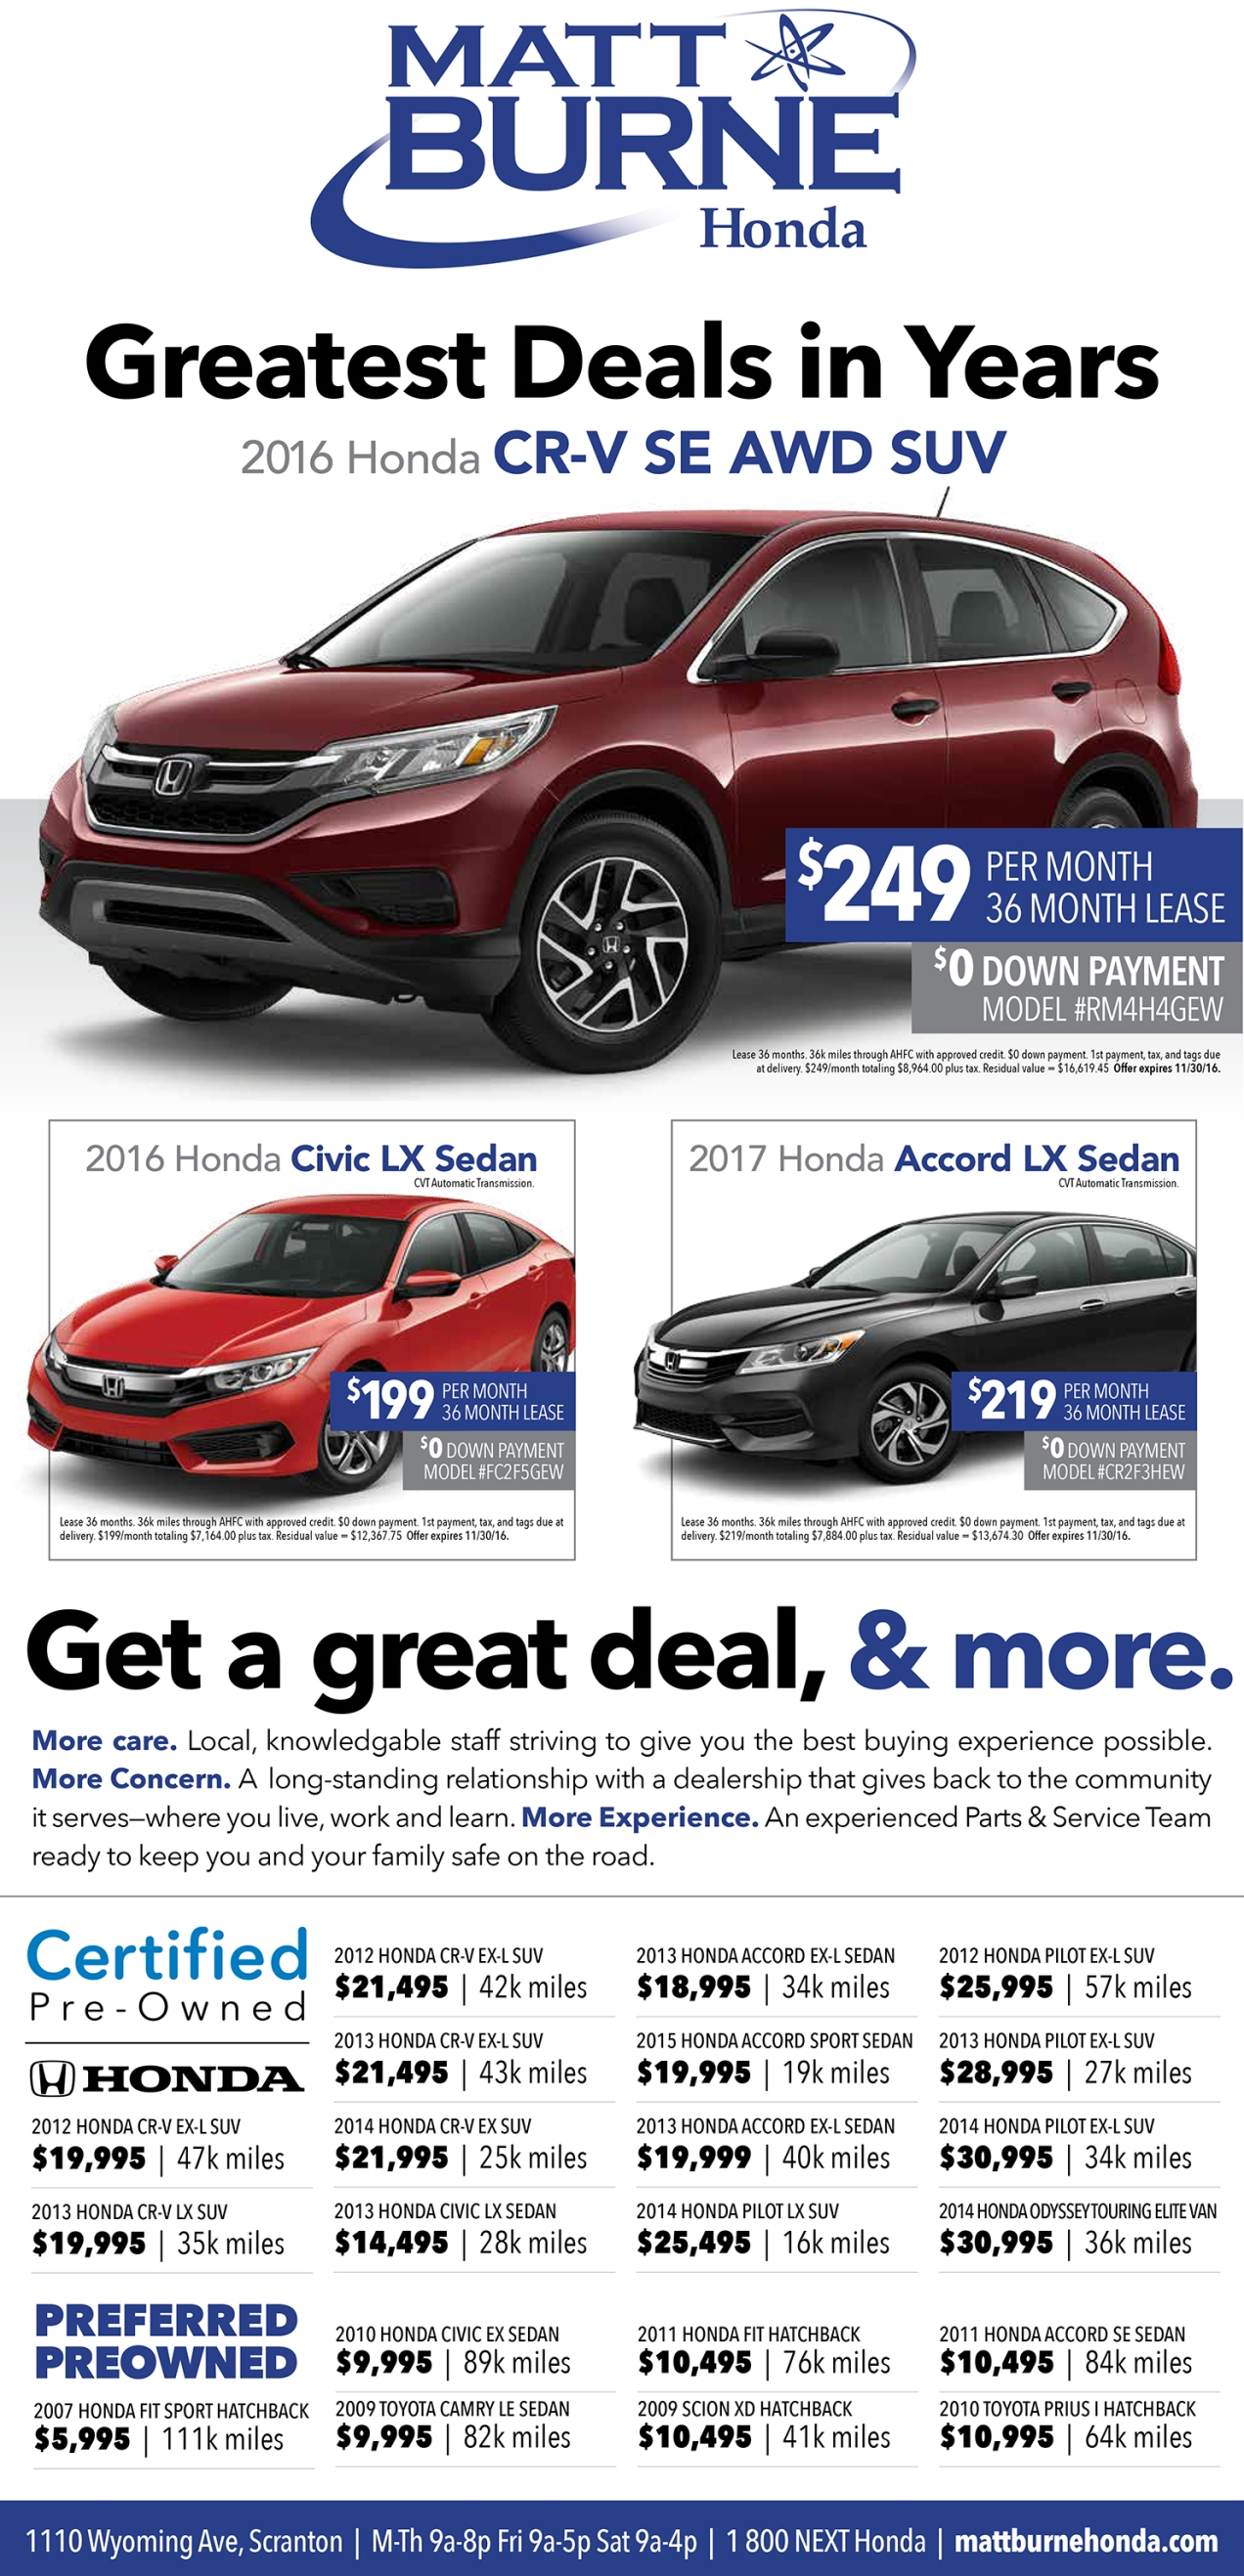 Matt Burne Honda Full Page Newspaper Ad